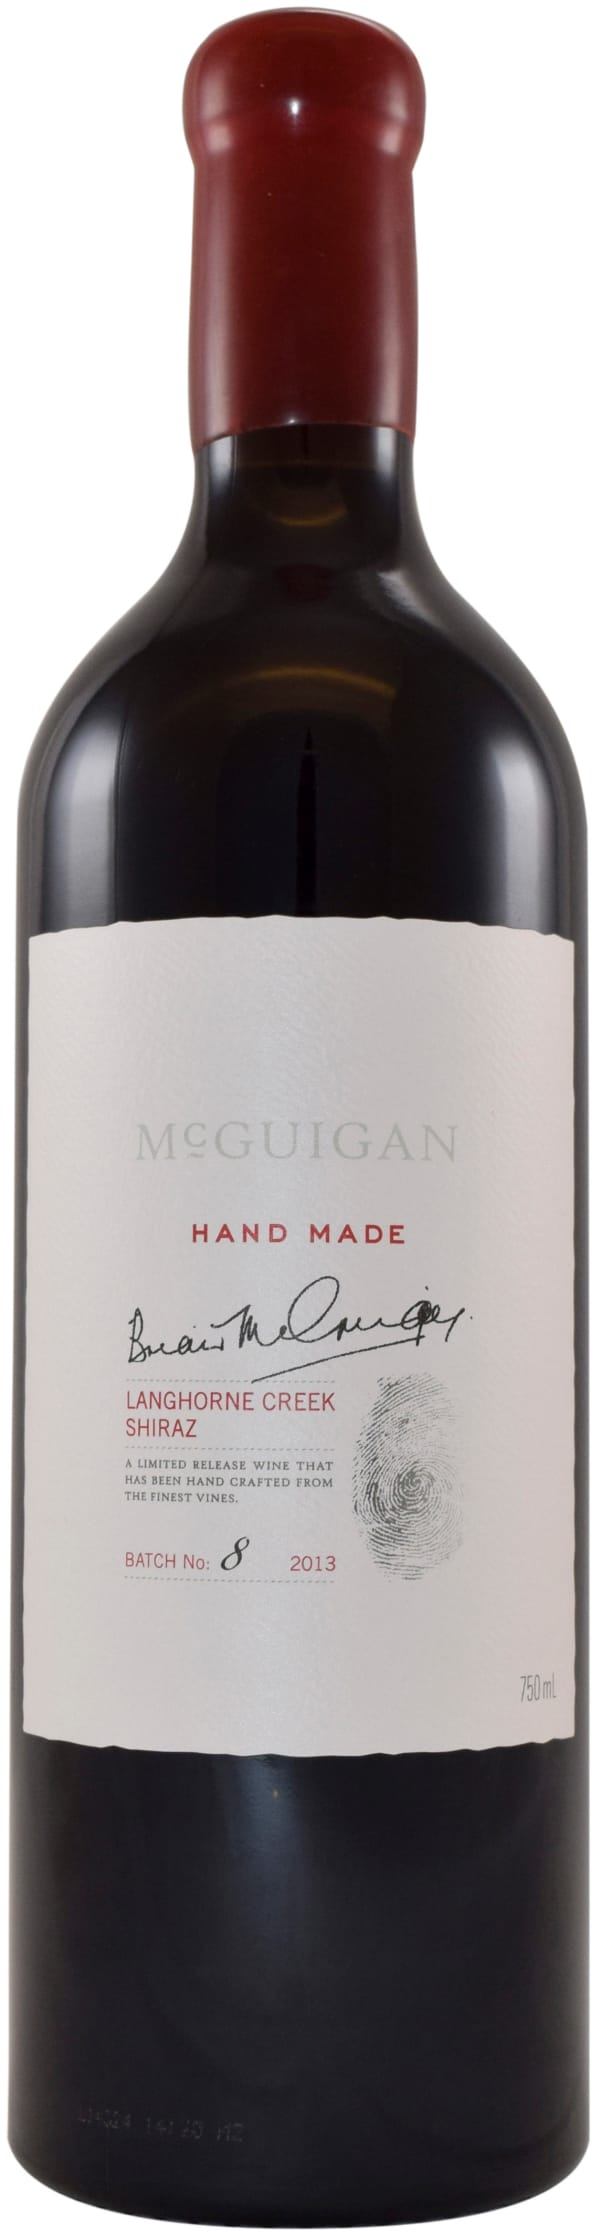 McGuigan Hand Made Shiraz 2013